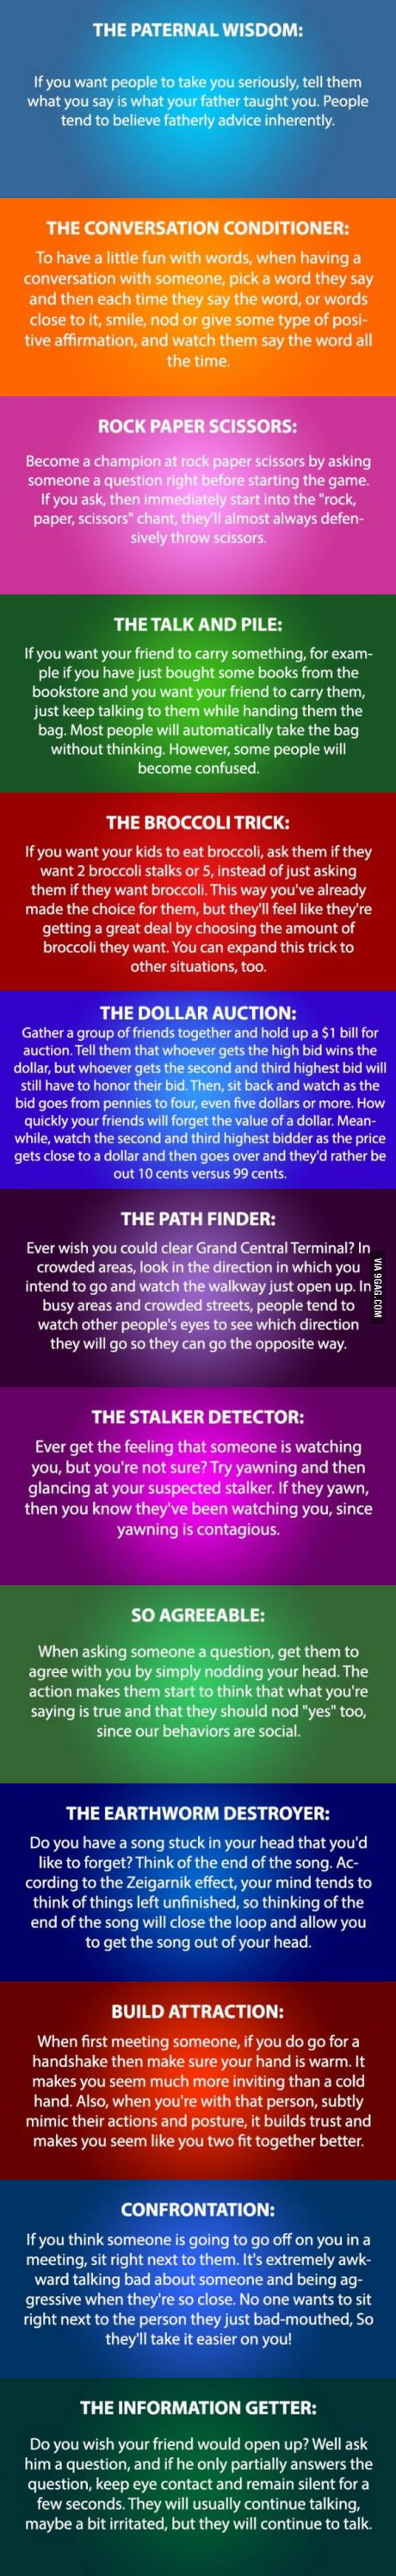 13 Cool Psychology Tricks You Need To Try